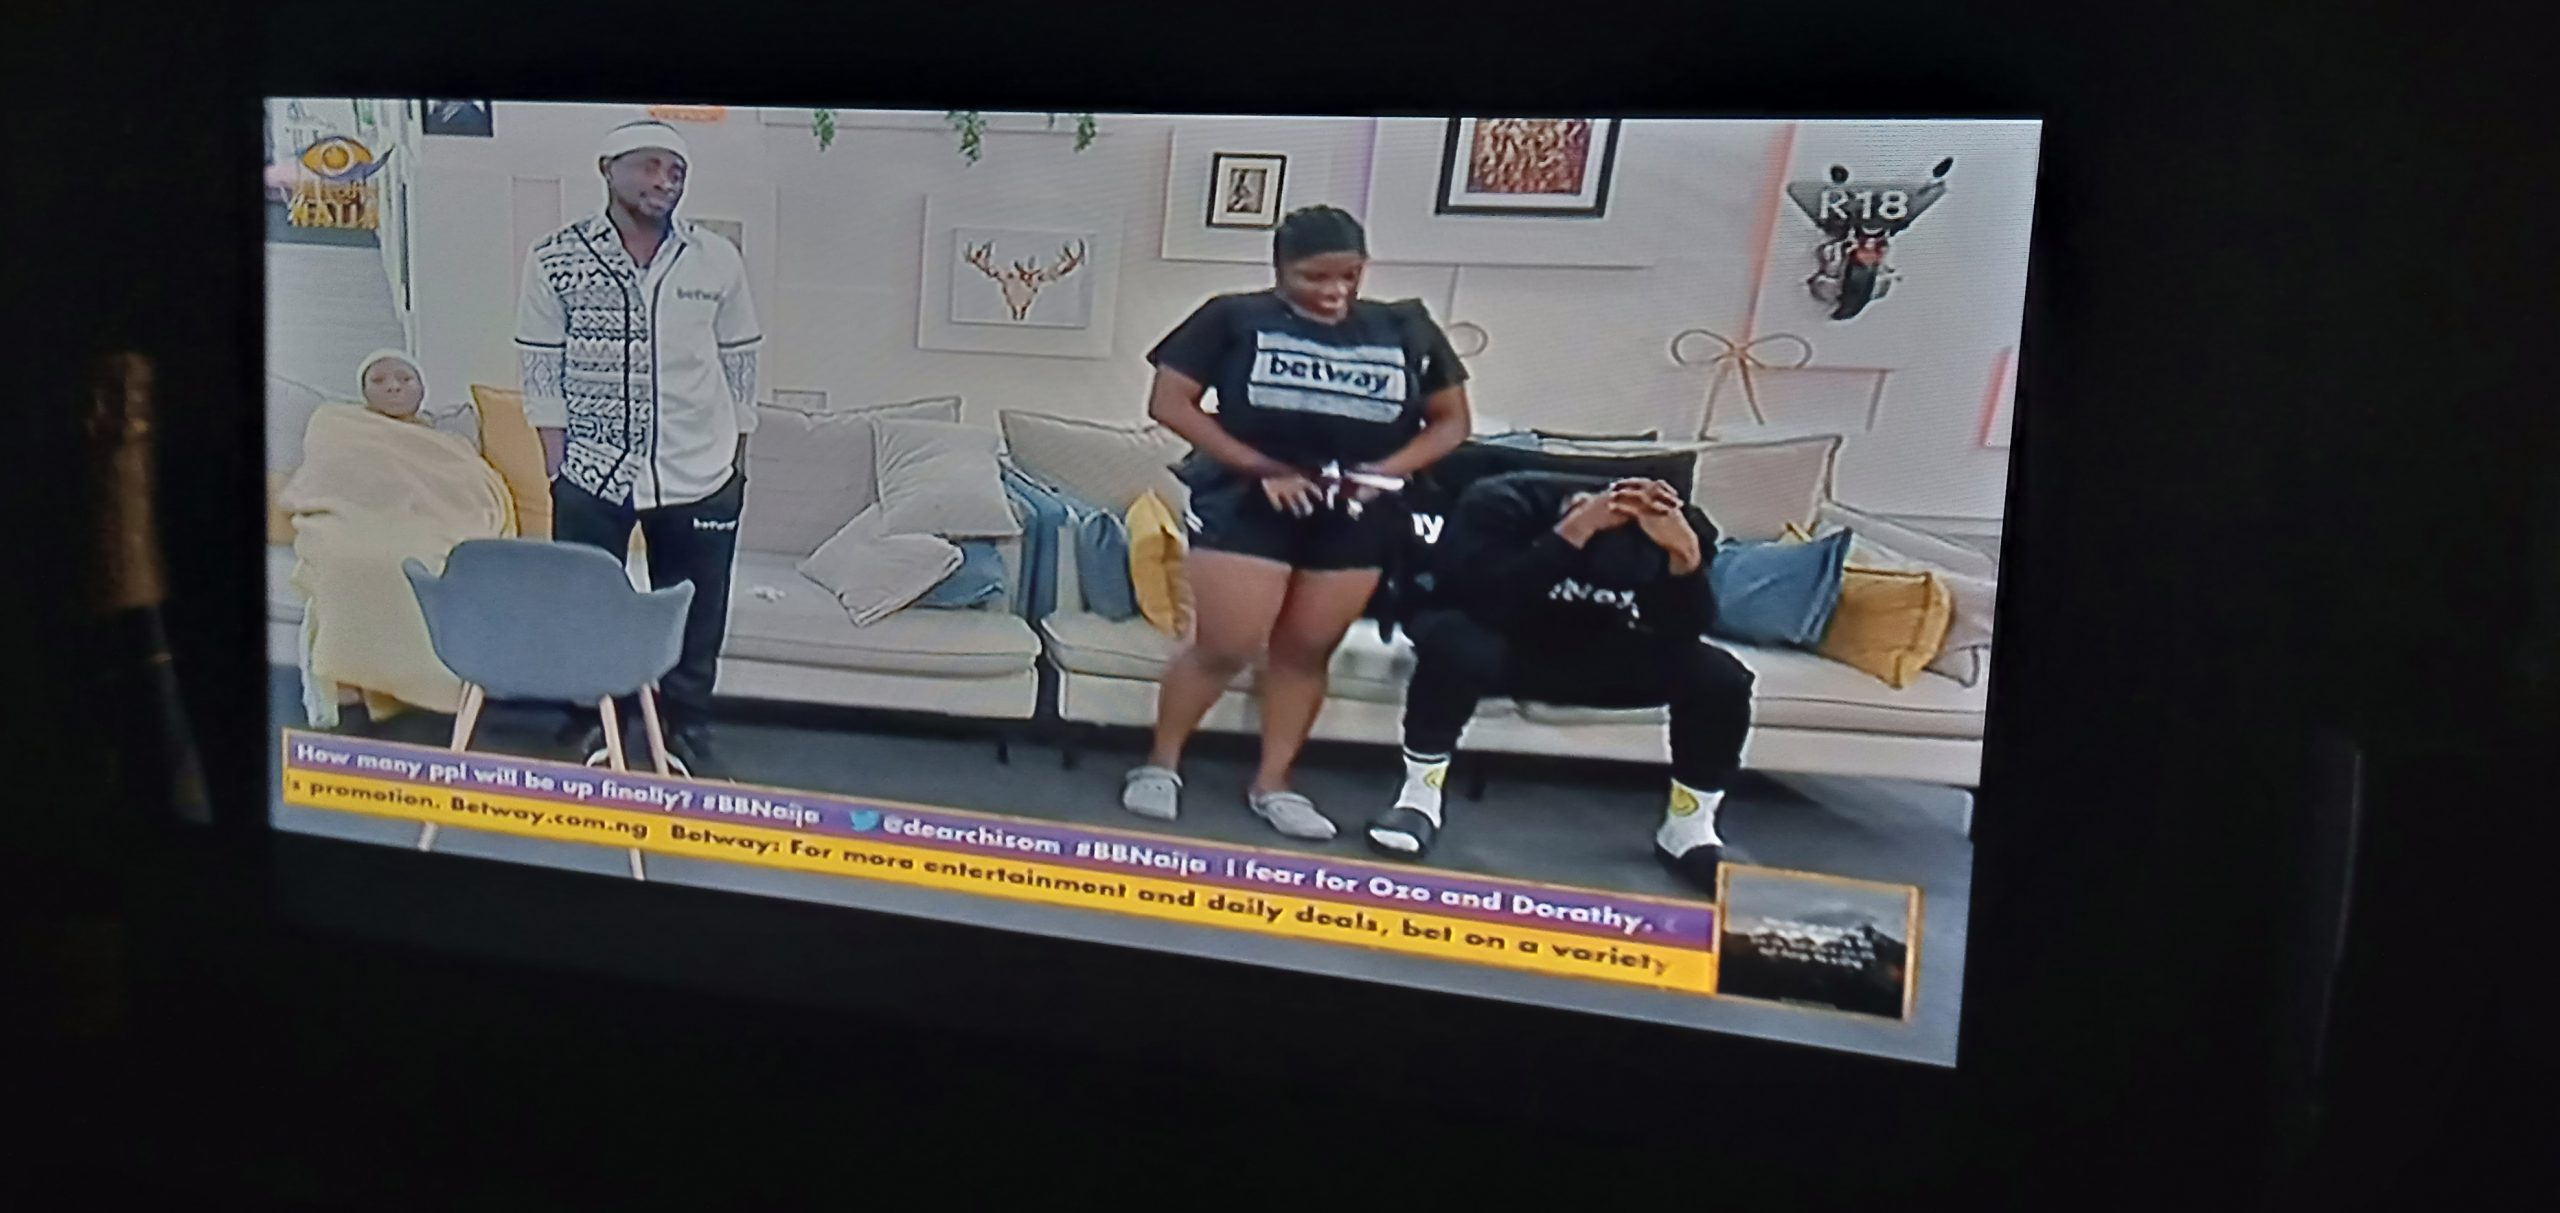 #BBNaija2020 : Housemates up for possible eviction on Sunday by housemates